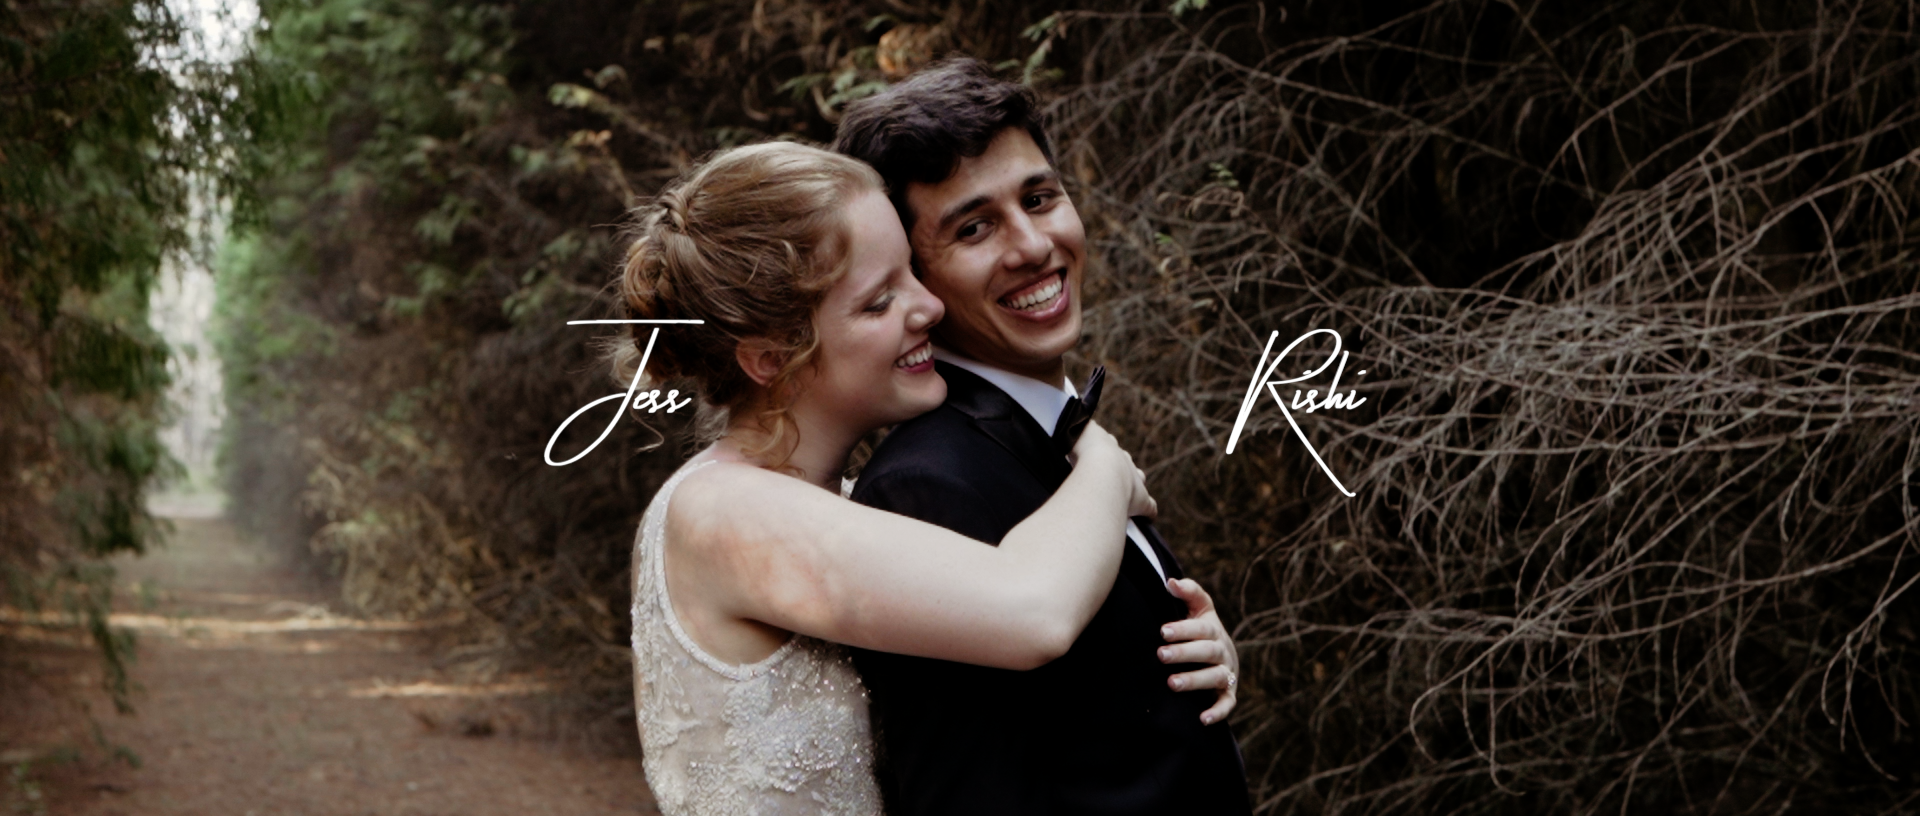 Jess + Rishi | Blackheath, Australia | allview escape